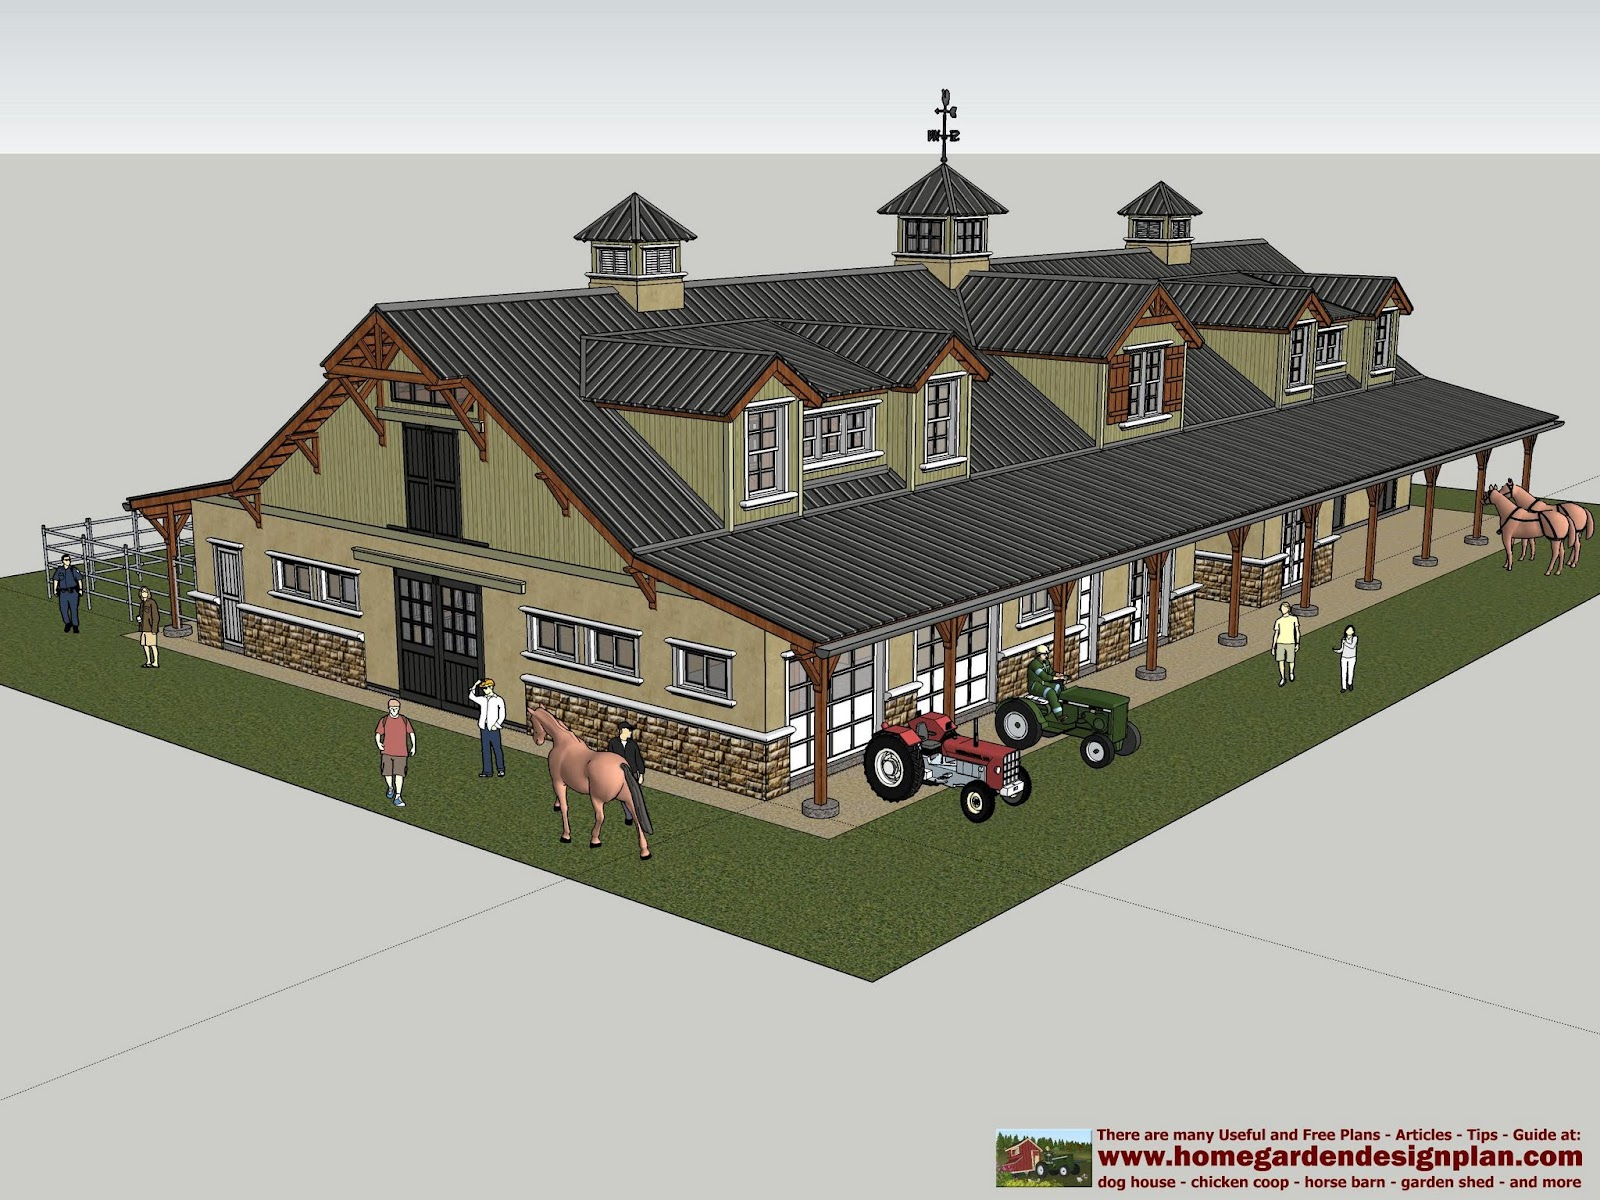 Home garden plans horse barns for Horse stable design plans